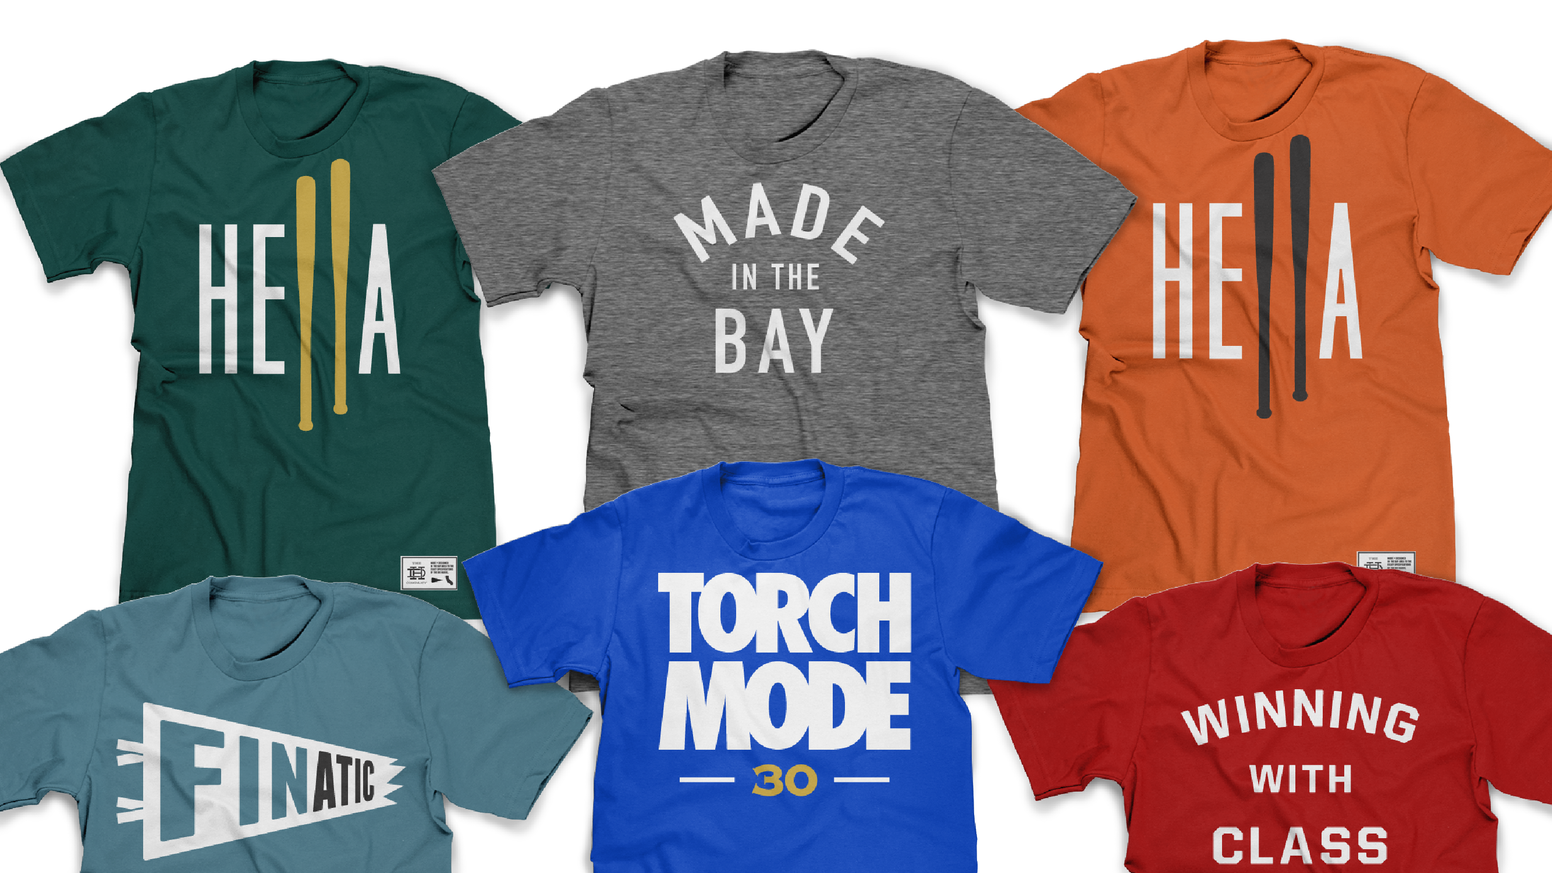 Our goal is to create locally manufactured apparel for Bay Area Die Hard fans - with all new colors true to SPORT YOUR COLORS